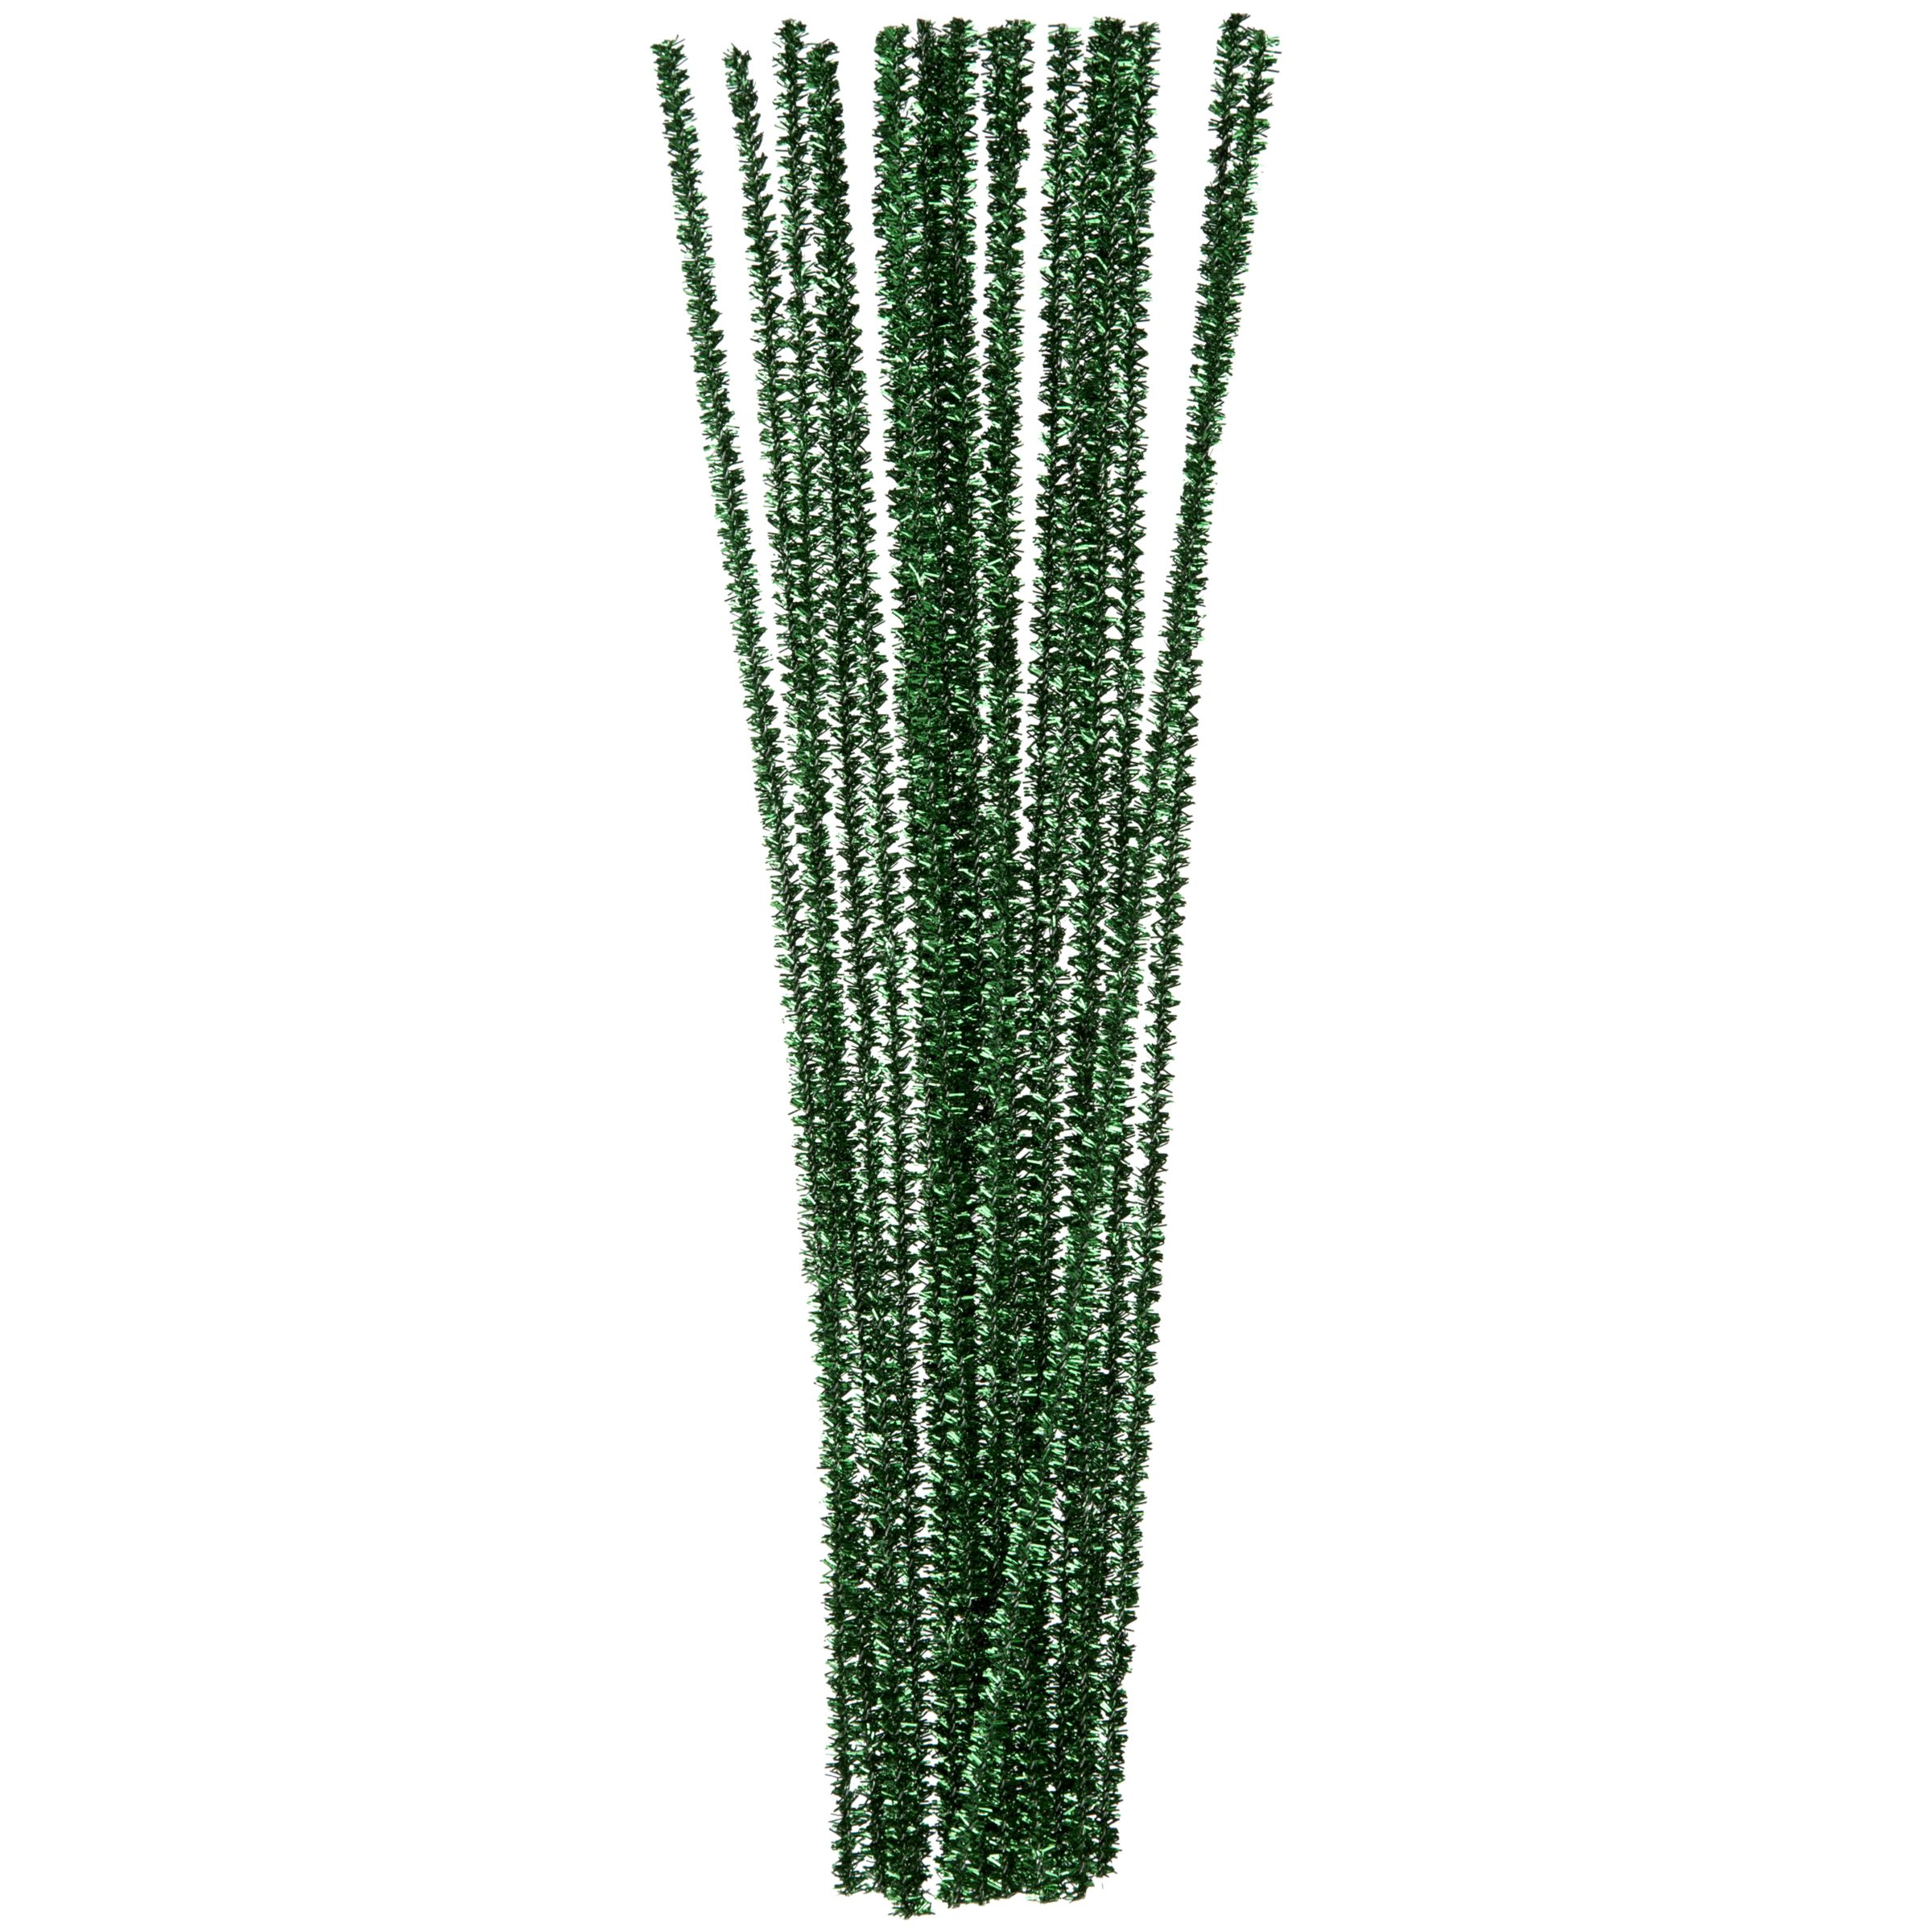 John Lewis Pipe Cleaners, Pack of 30, Green